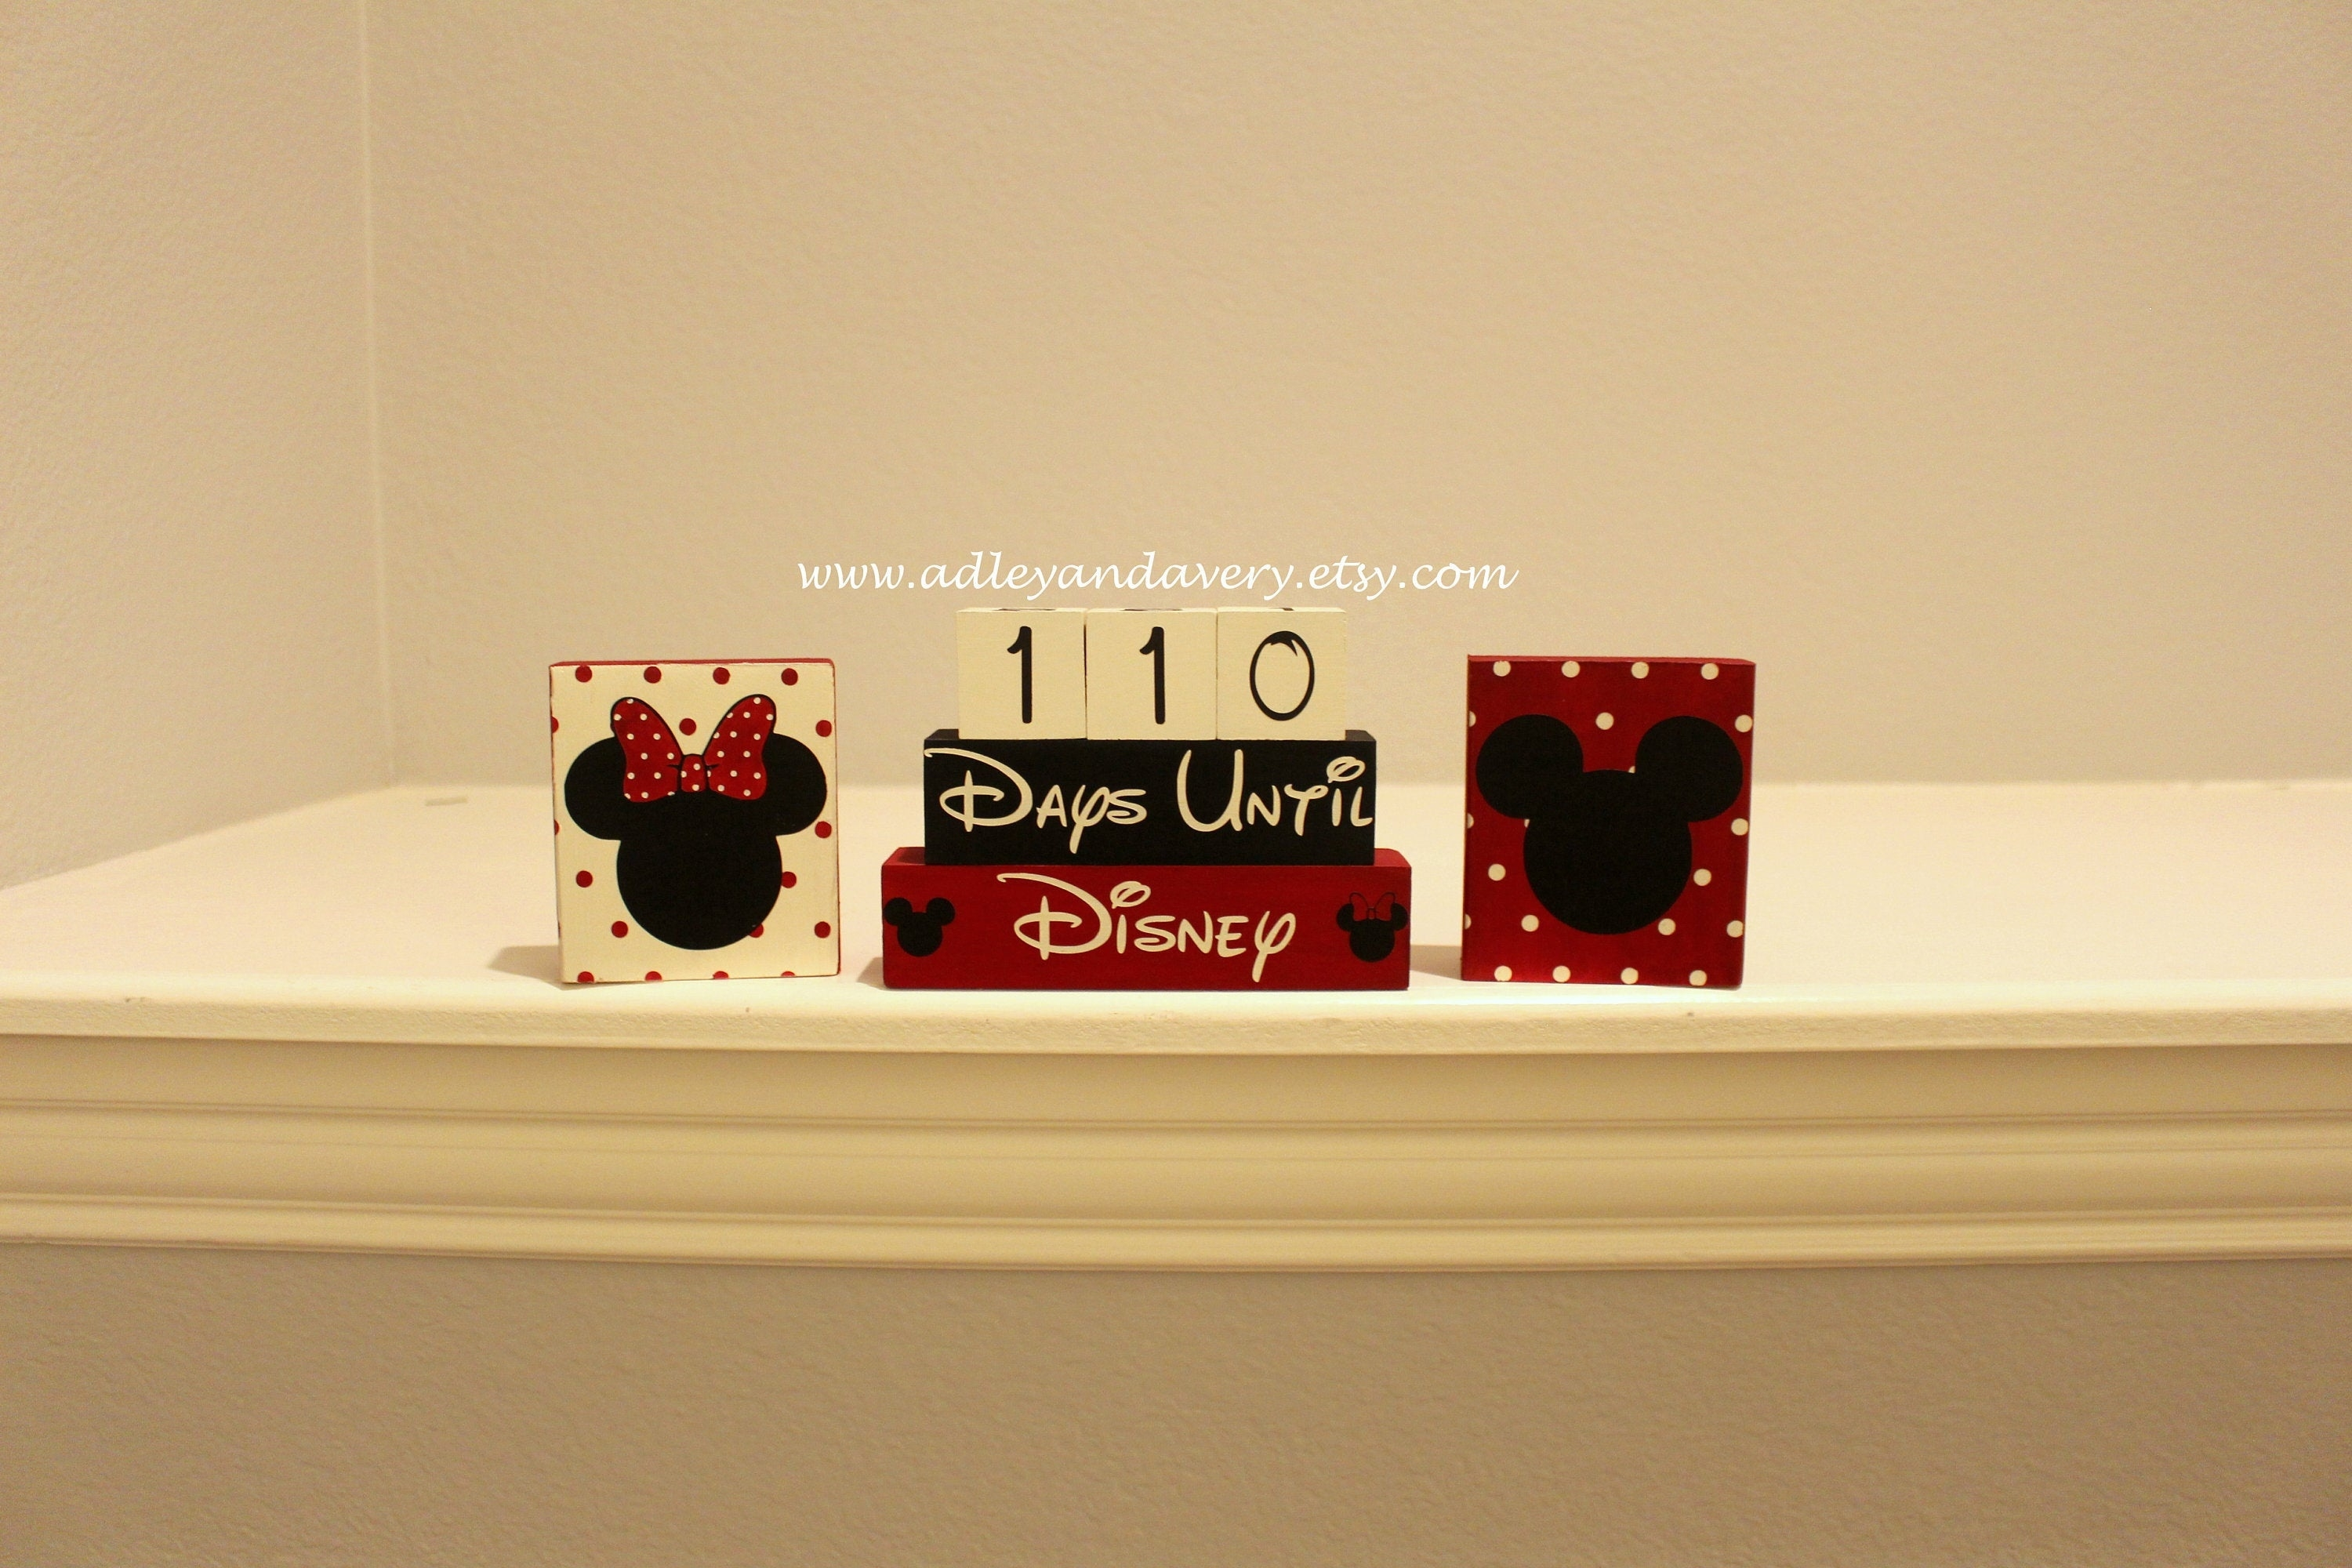 Disney Countdown Blocks, Calendar Blocks, Disney Blocks, Countdown Blocks,  Disney Vacation, Countdown To Disney_Disney Countdown Calendar Blocks